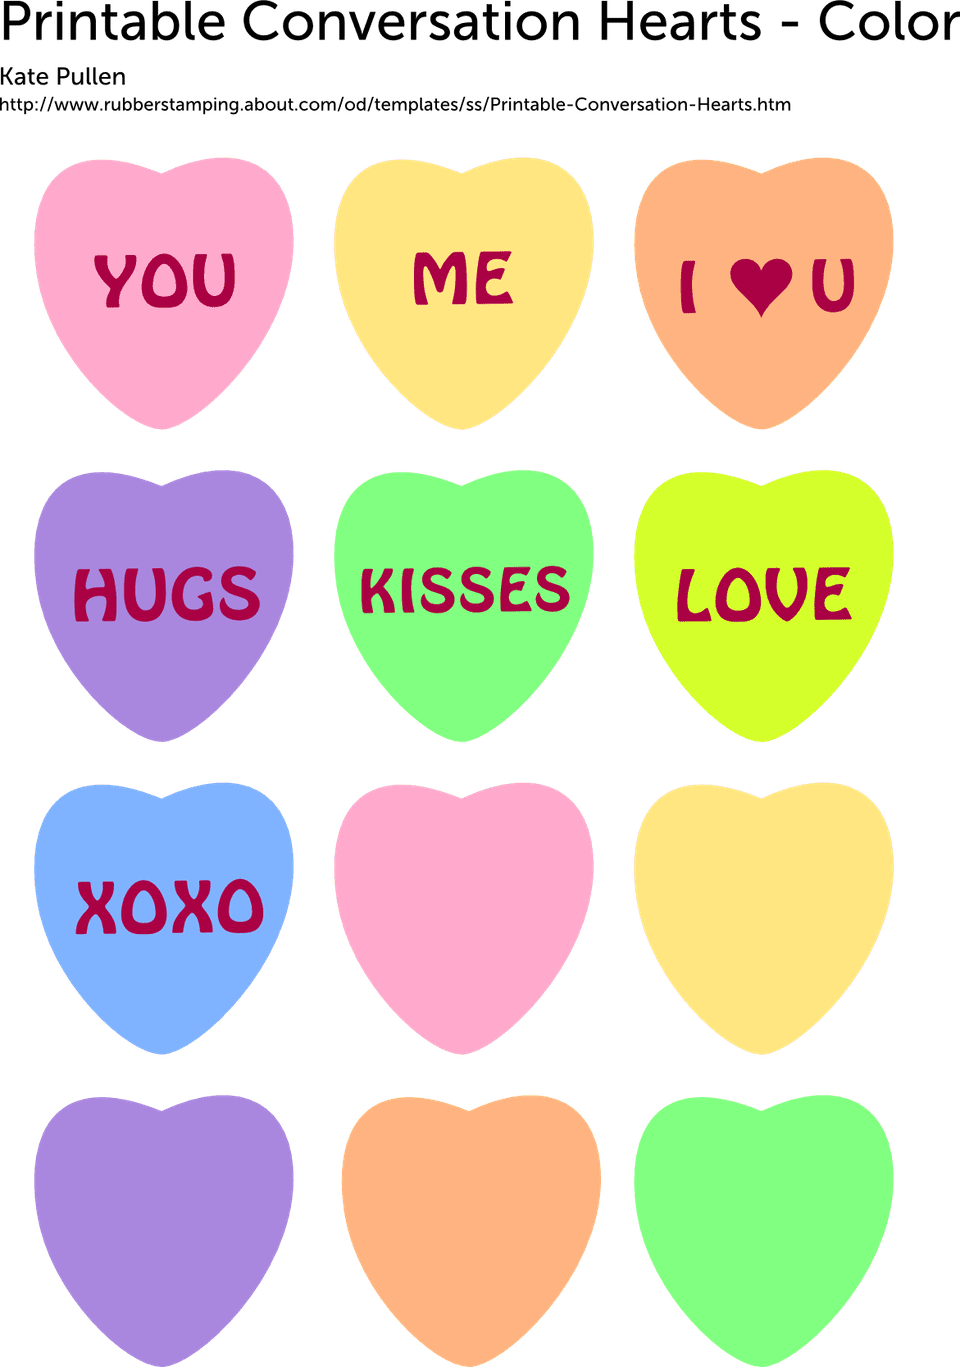 free printable conversation hearts for valentine u0026 39 s day